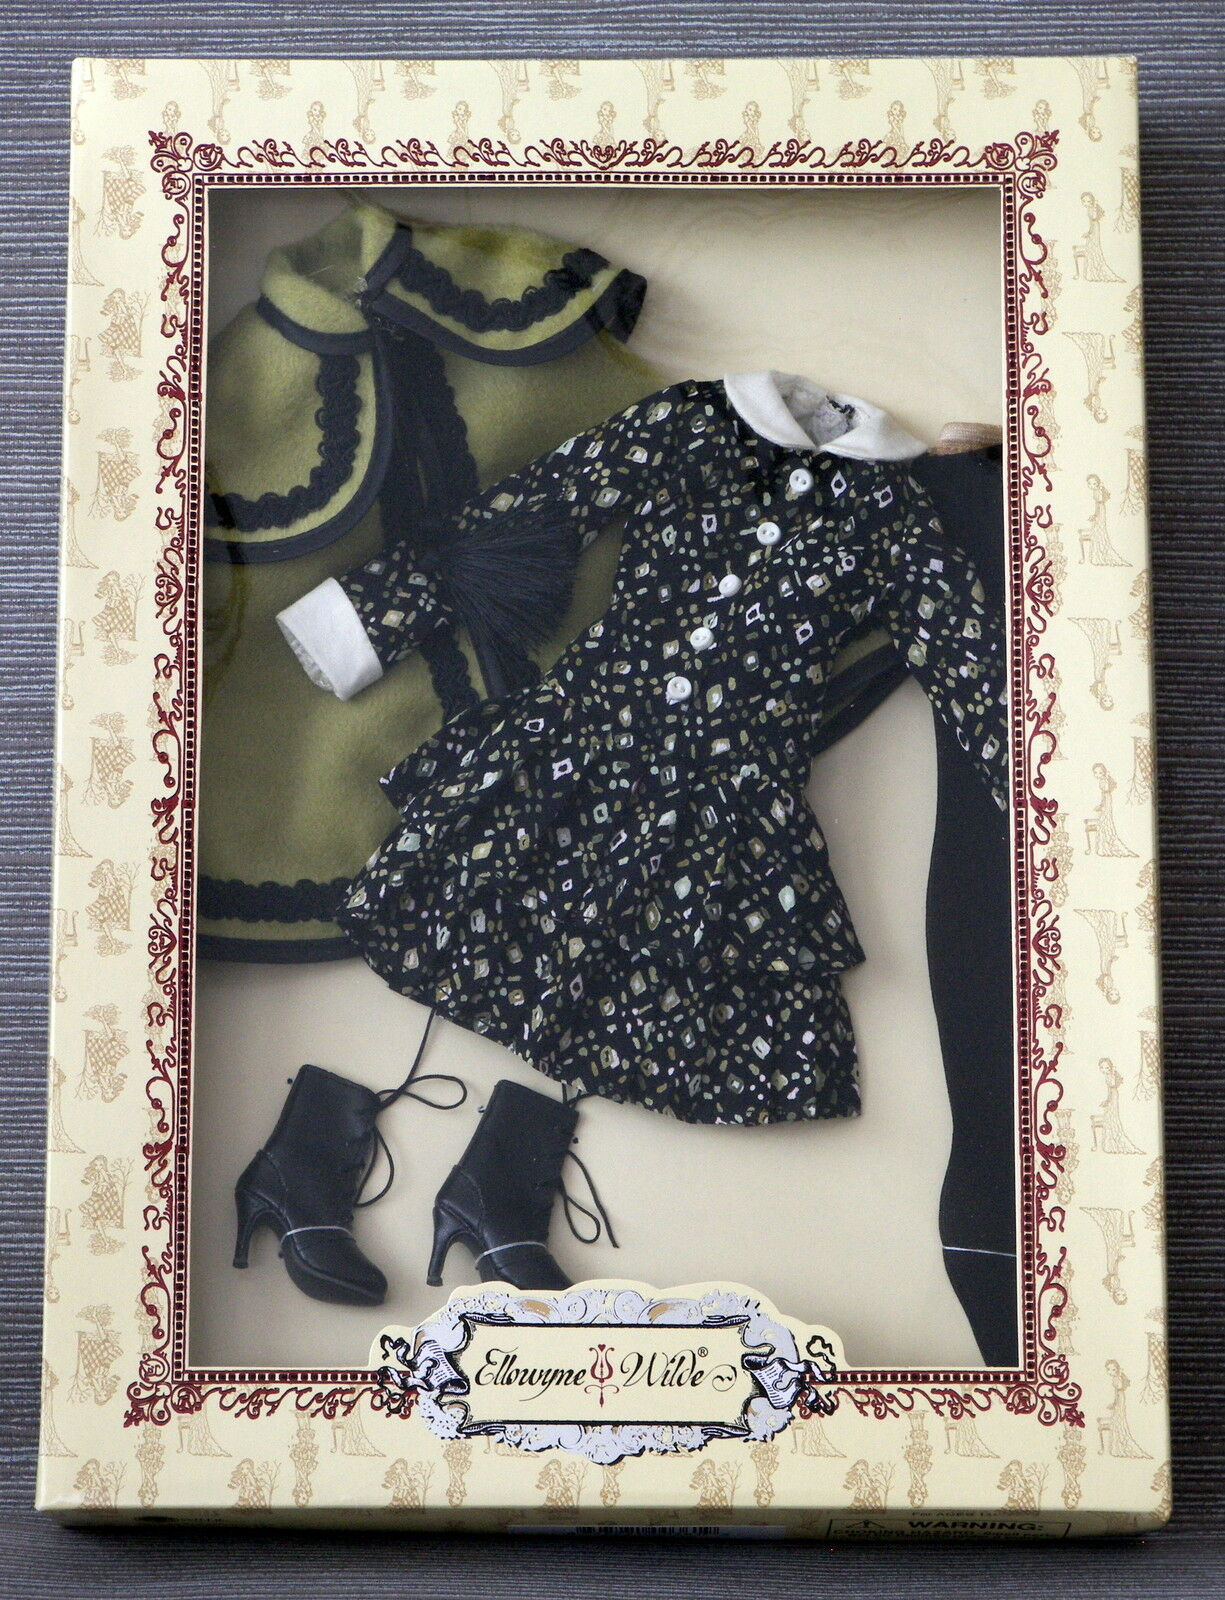 Tonner beautiful A Bit Foggy outfit  for Ellowyne Wilde doll NRFB